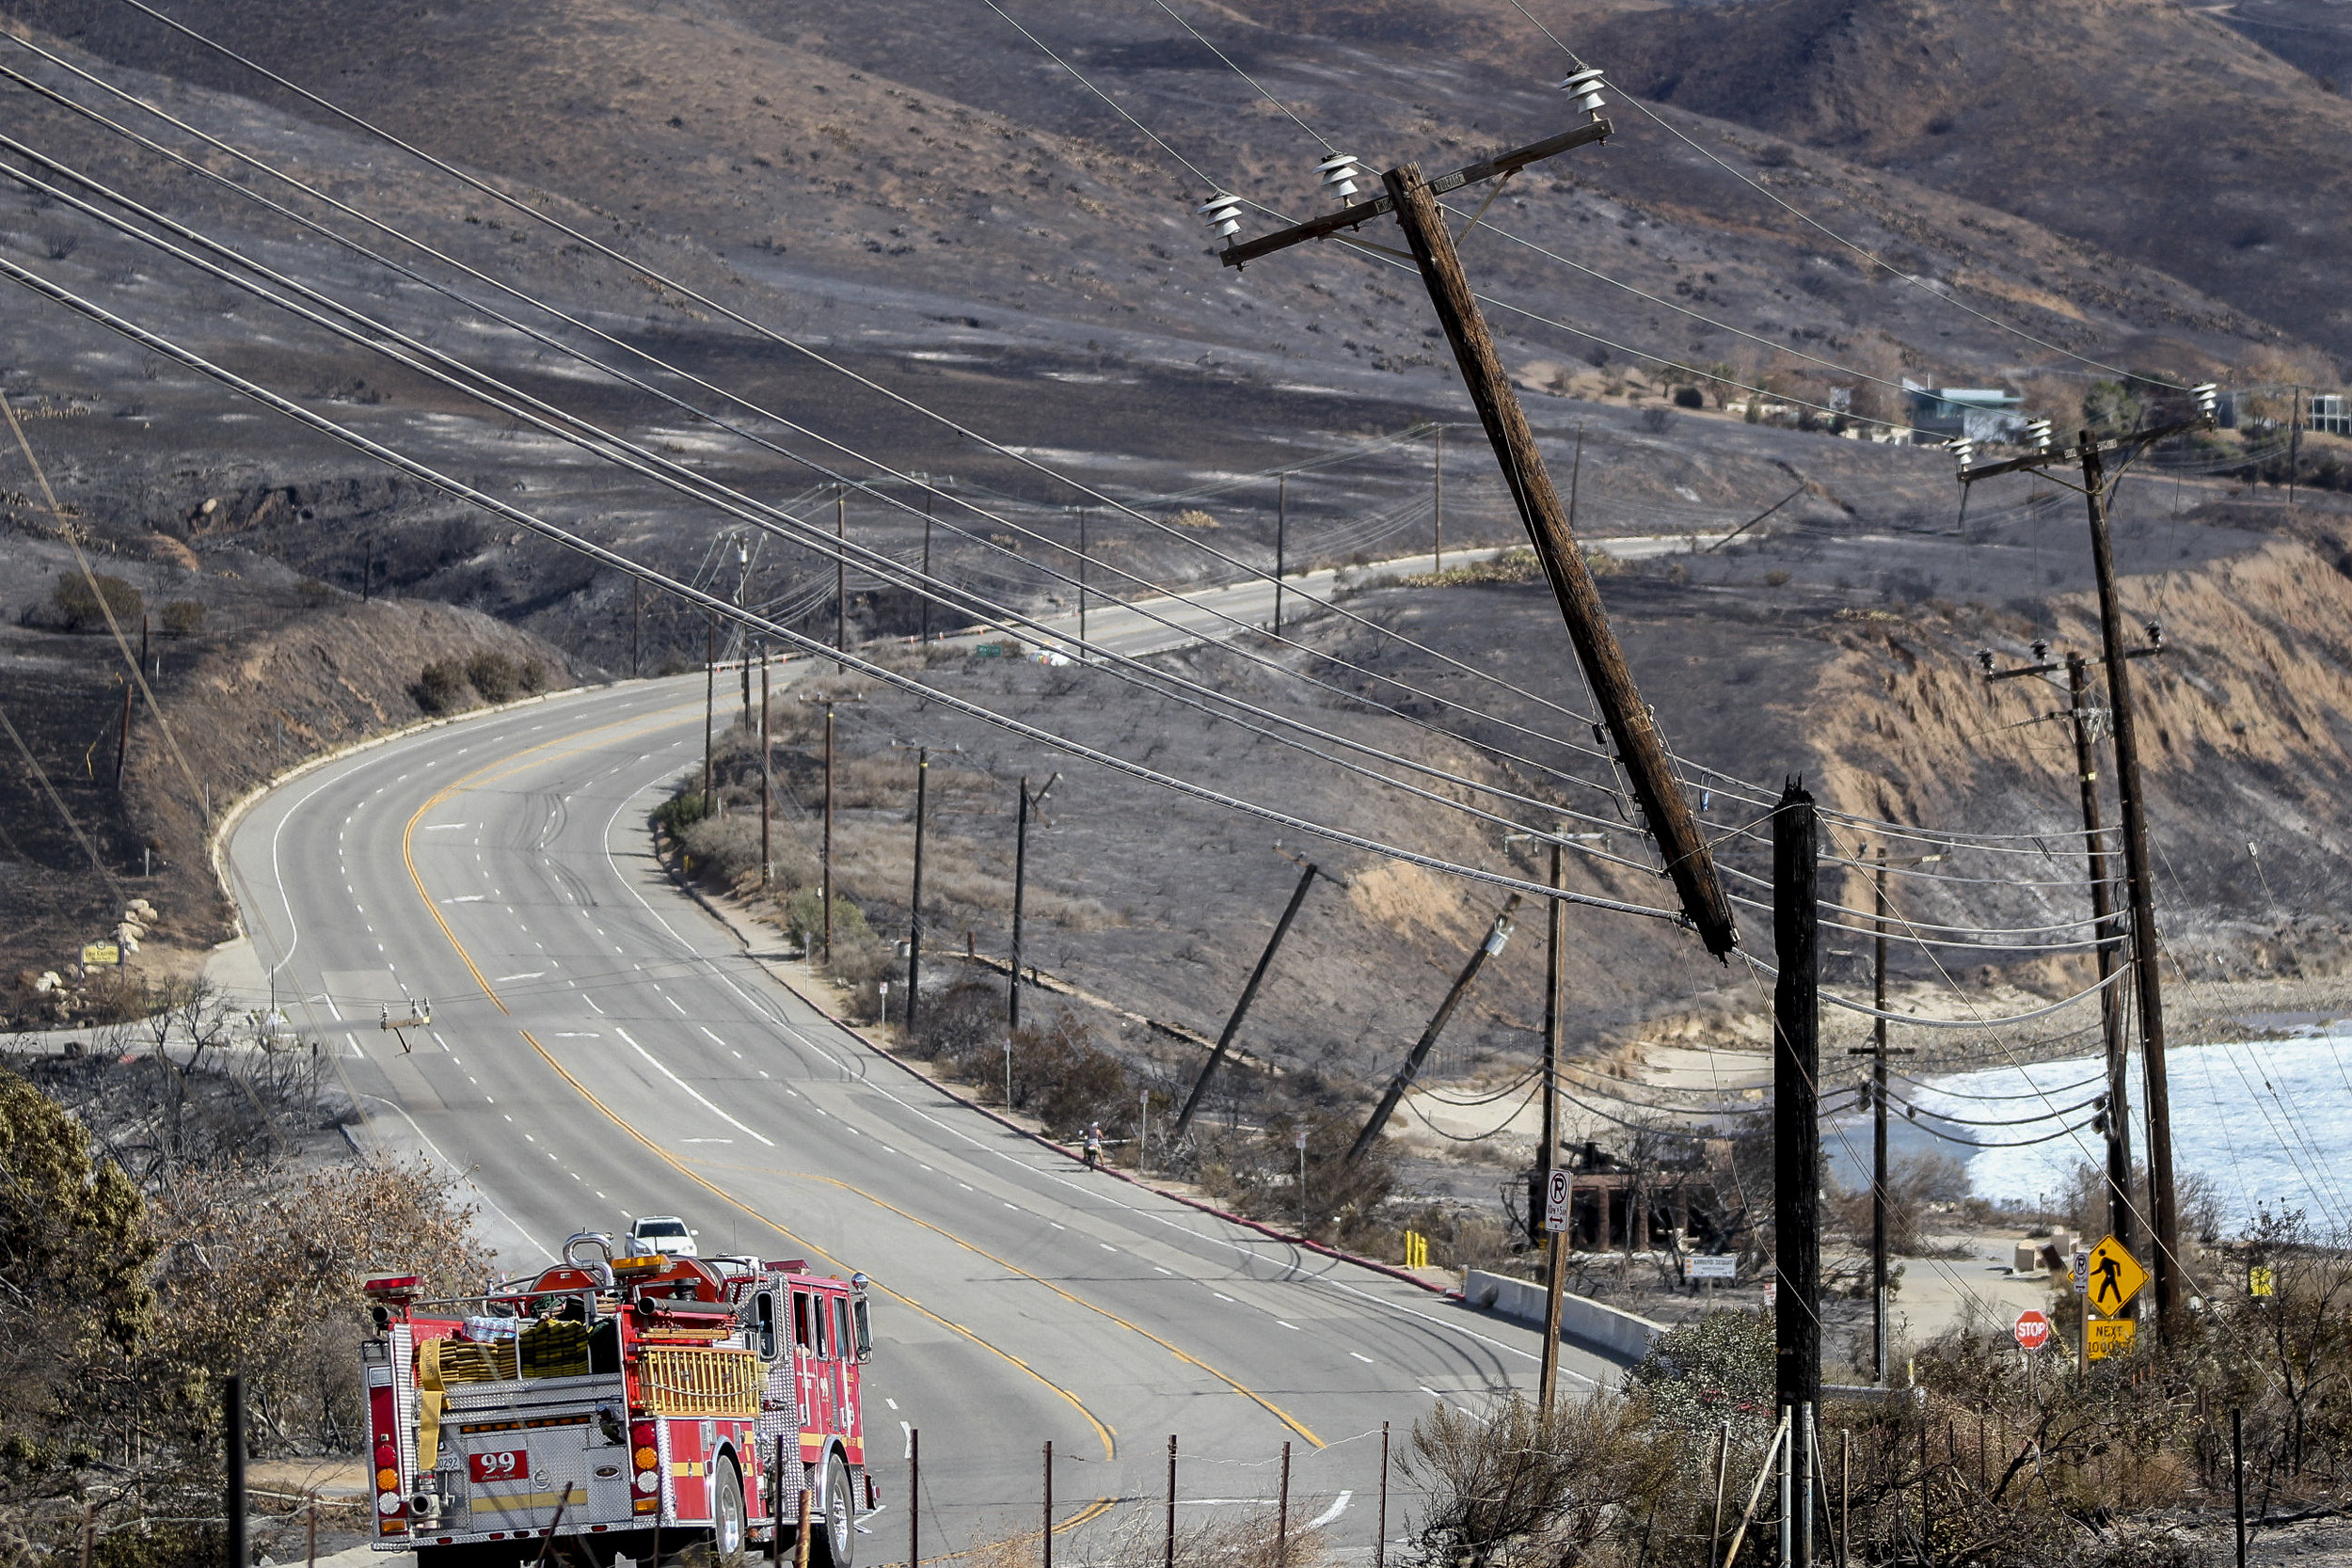 A fire truck drives by an electric pole damaged by the Woolsey fire along Pacific Coast Highway near Leo Carillo State Park on November 13, 2018 in Malibu, Calif. (Jose Lopez)